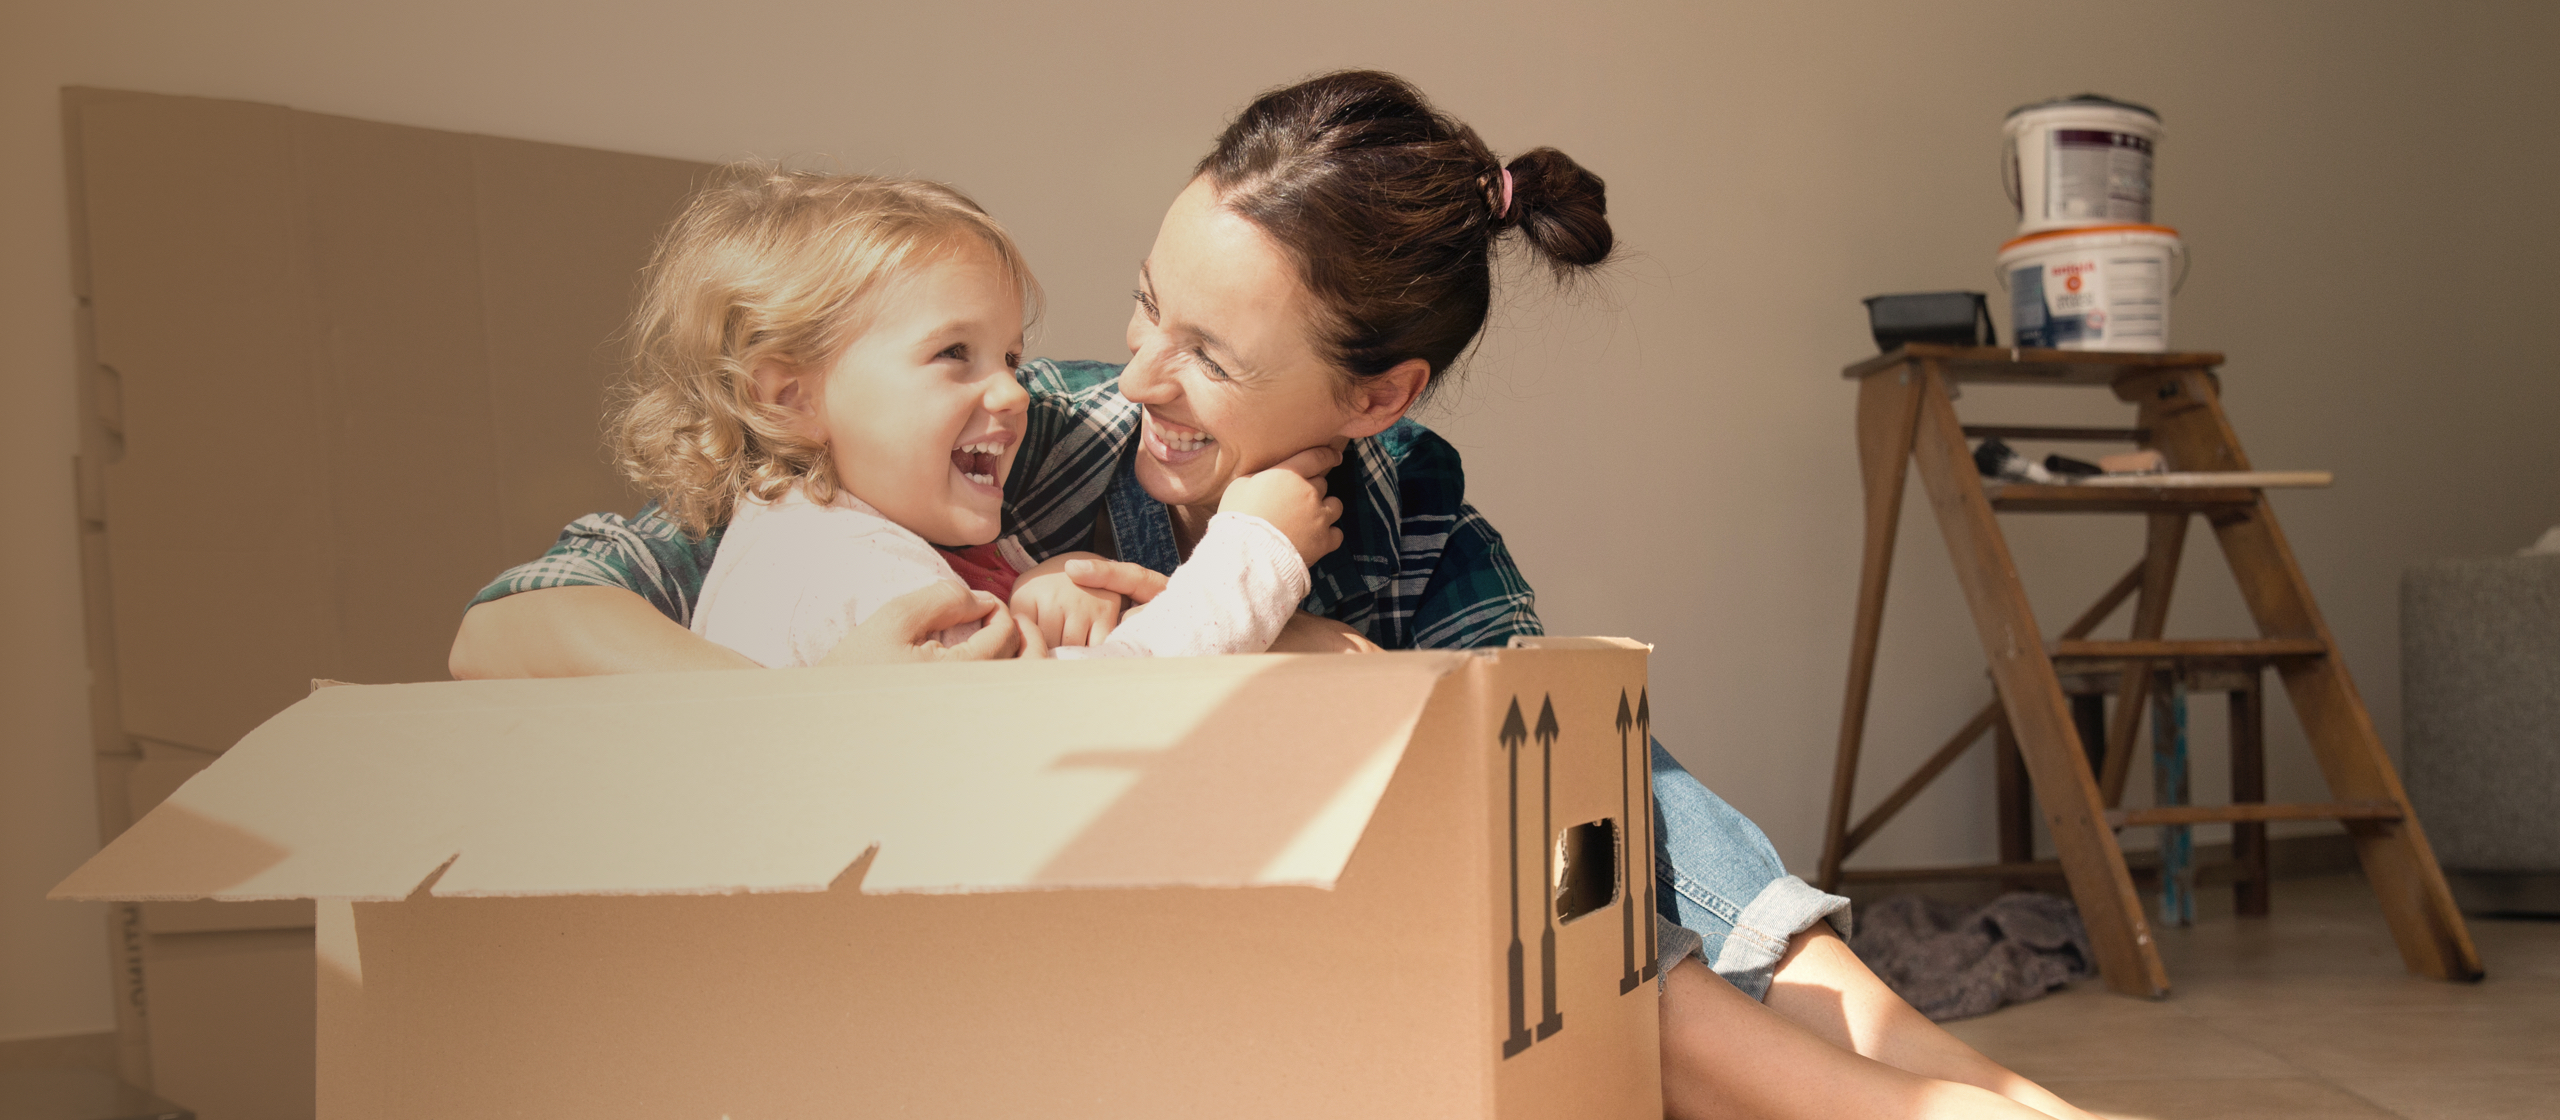 woman playing with little girl in a moving box